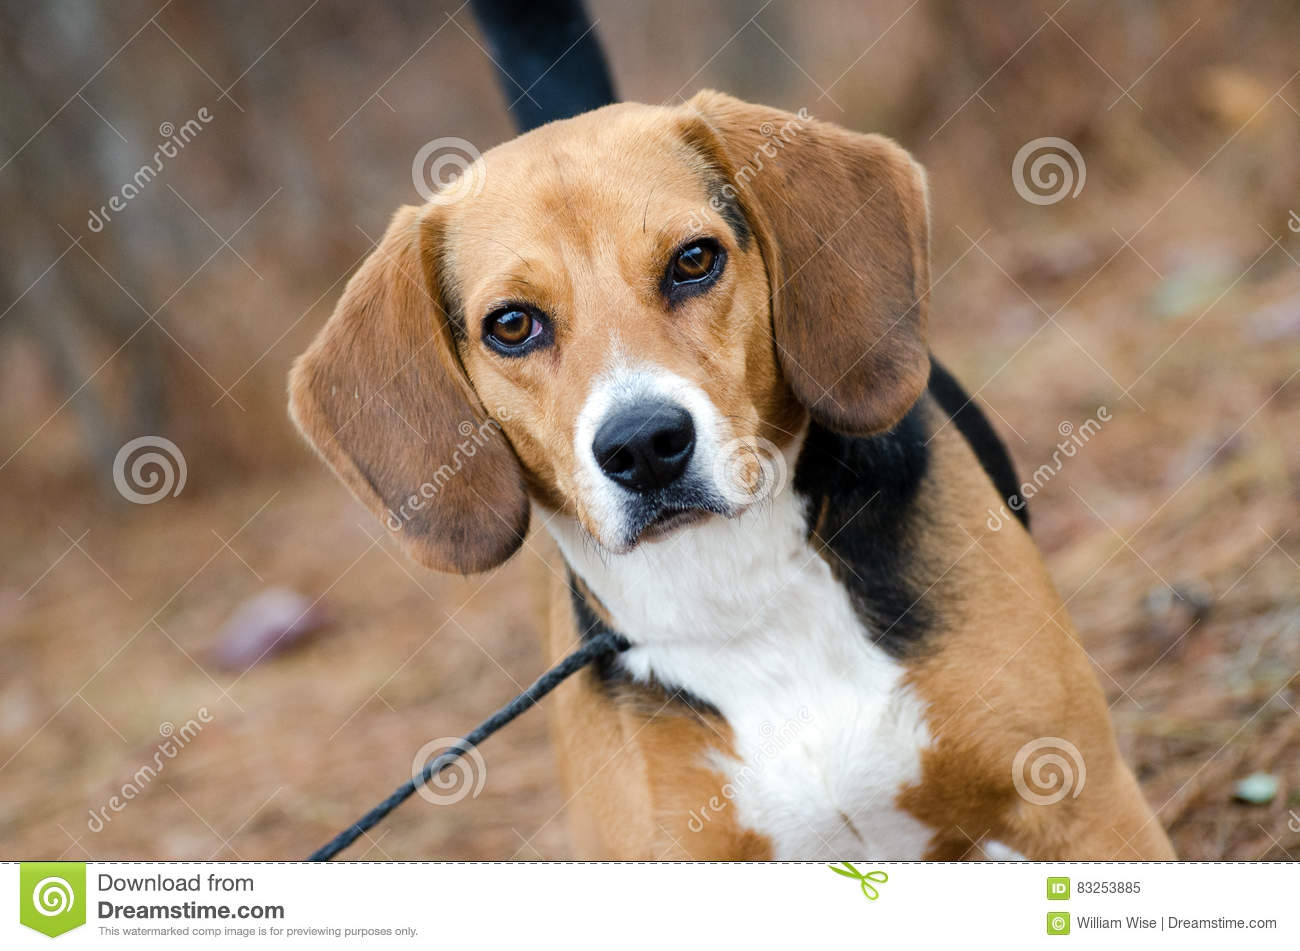 Beagle Dog stock image  Image of aussie, merle, control - 83253885